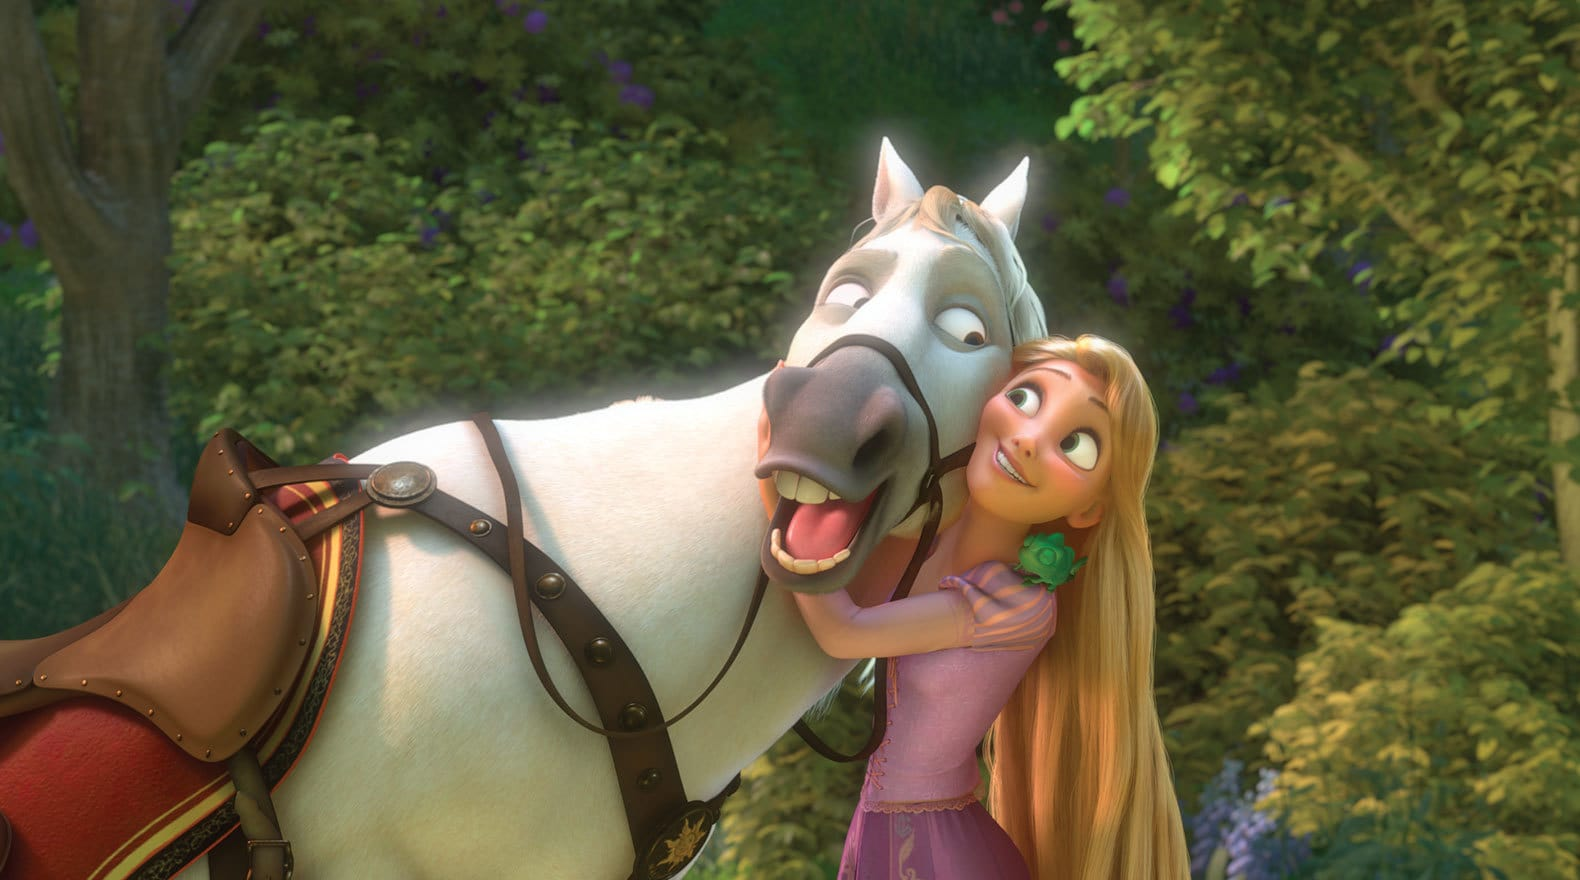 Rapunzel voiced by Mandy Moore hugging Maximus (a white horse) in Tangled